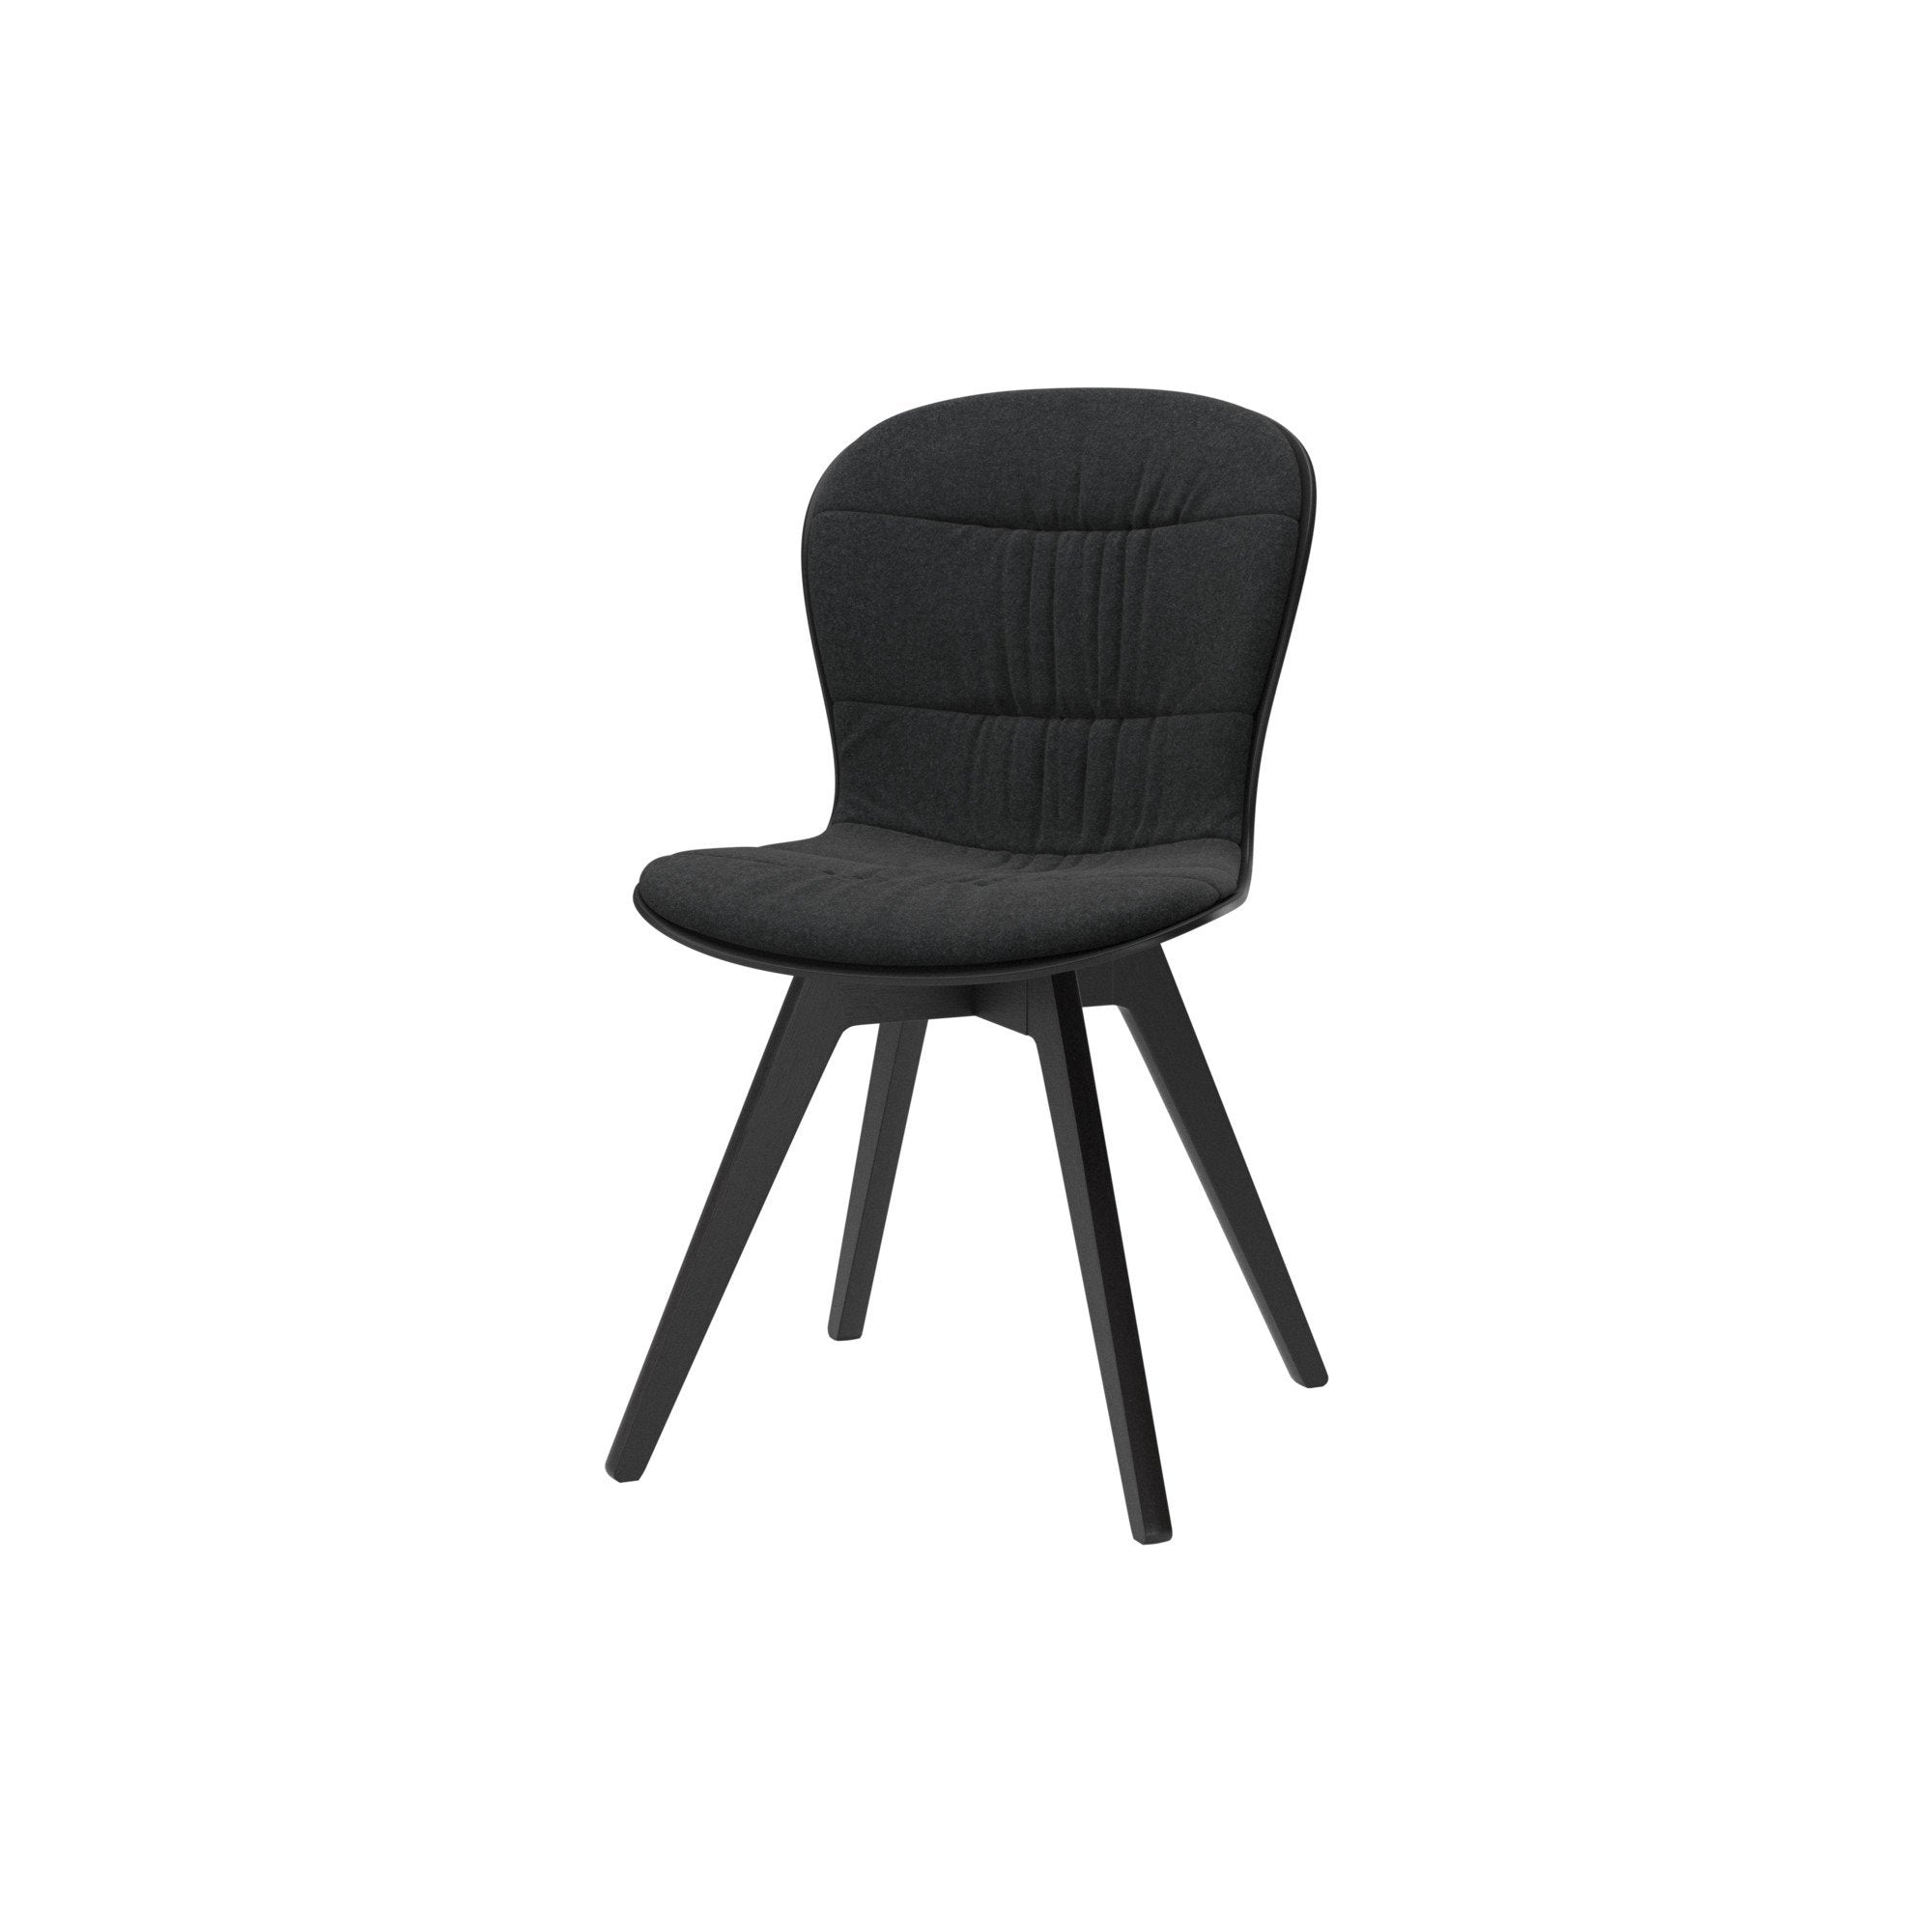 Adelaide Chair - Dark Gray Lux Felt